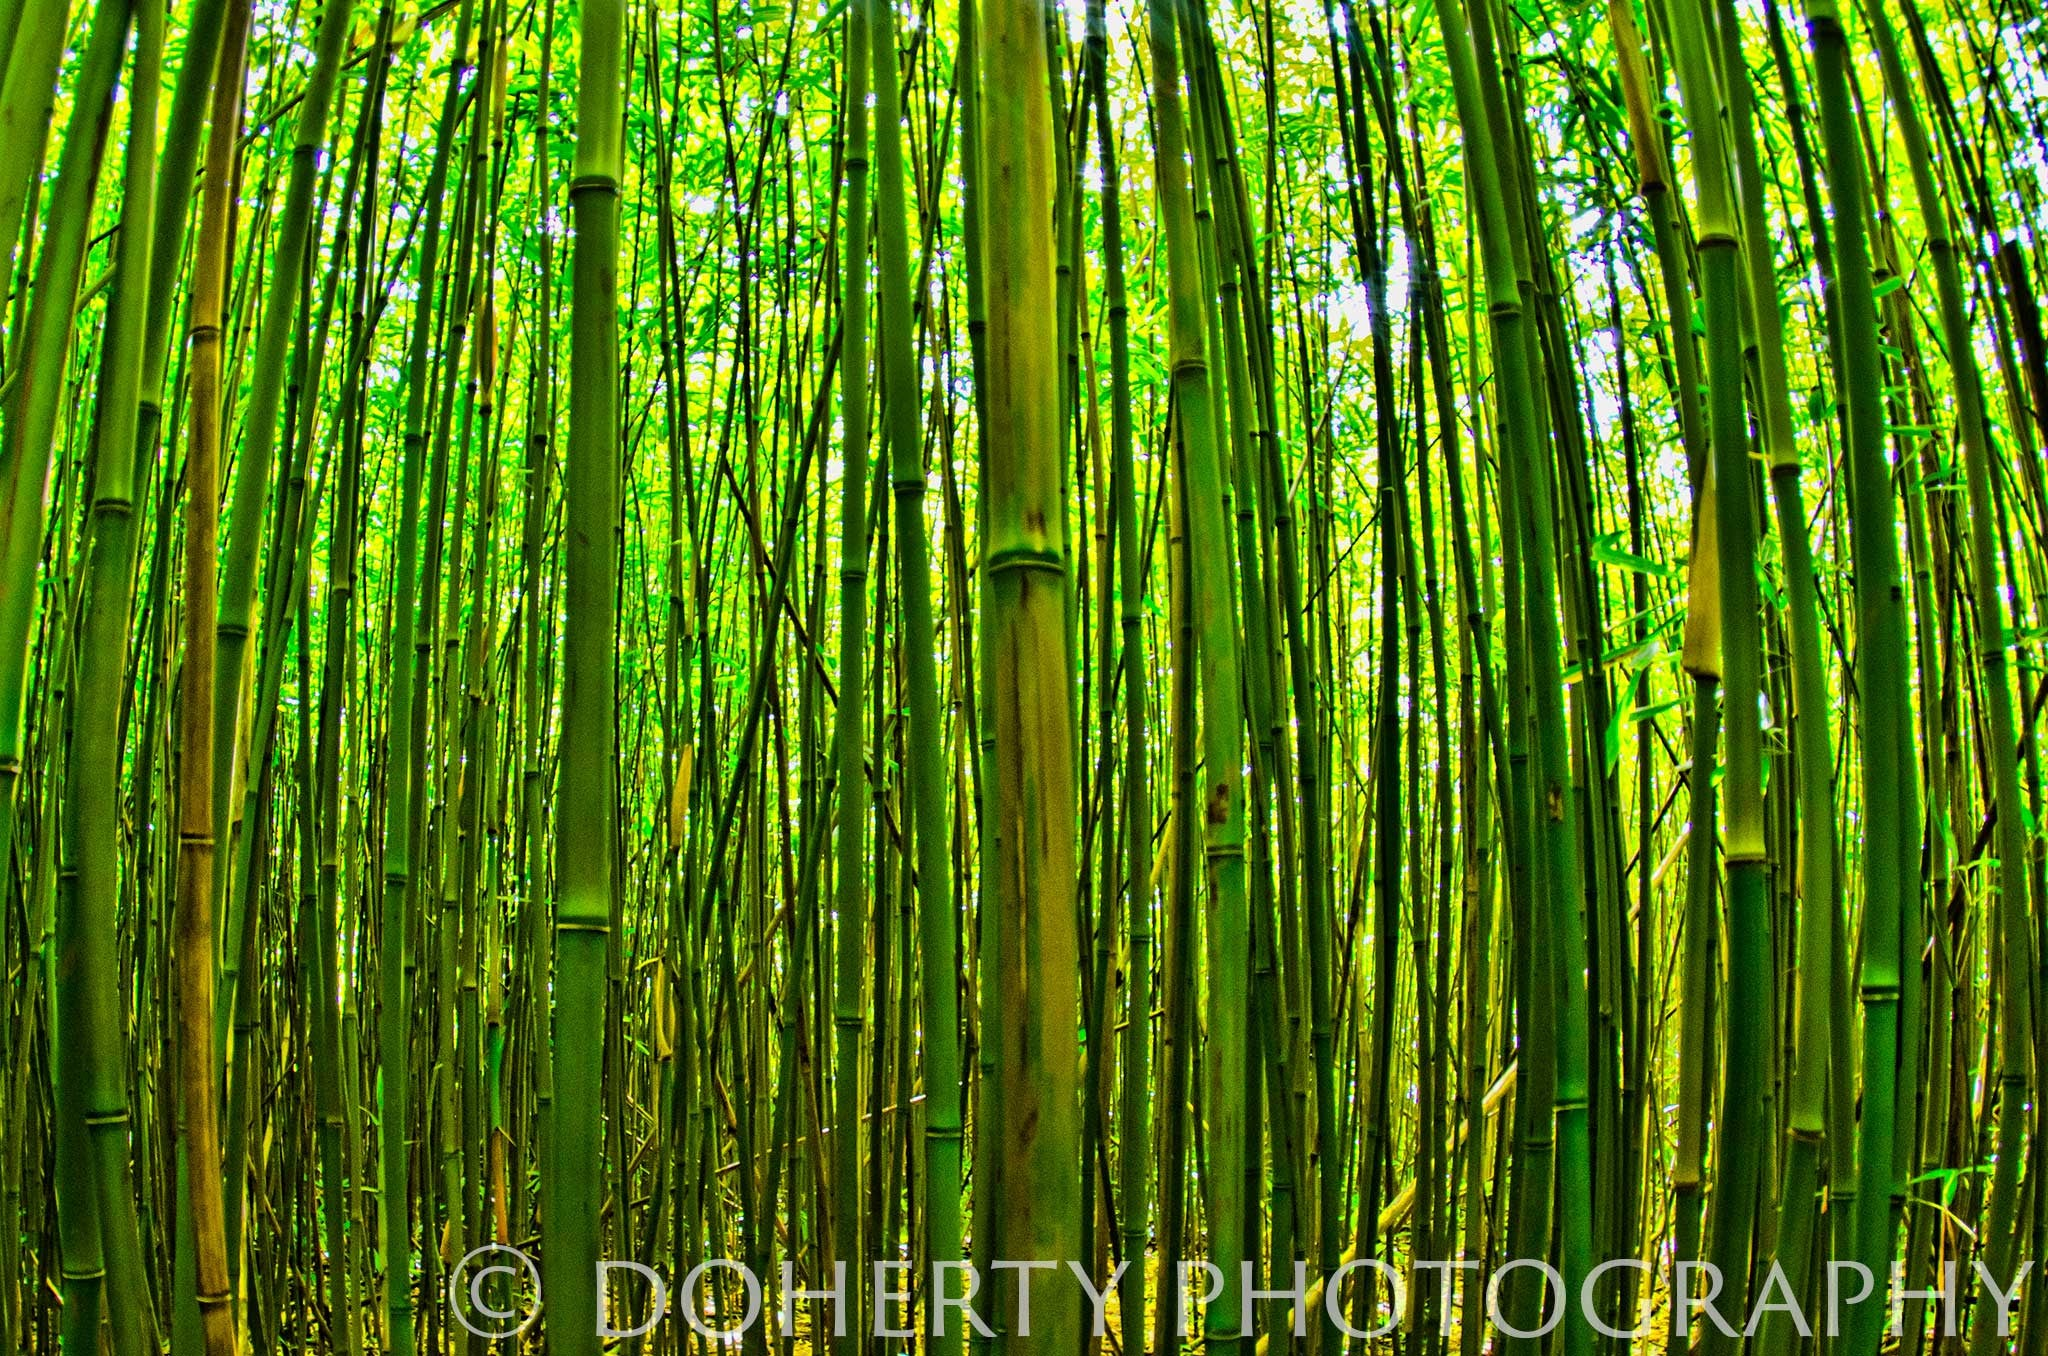 Bamboo Forest - Doherty Photography